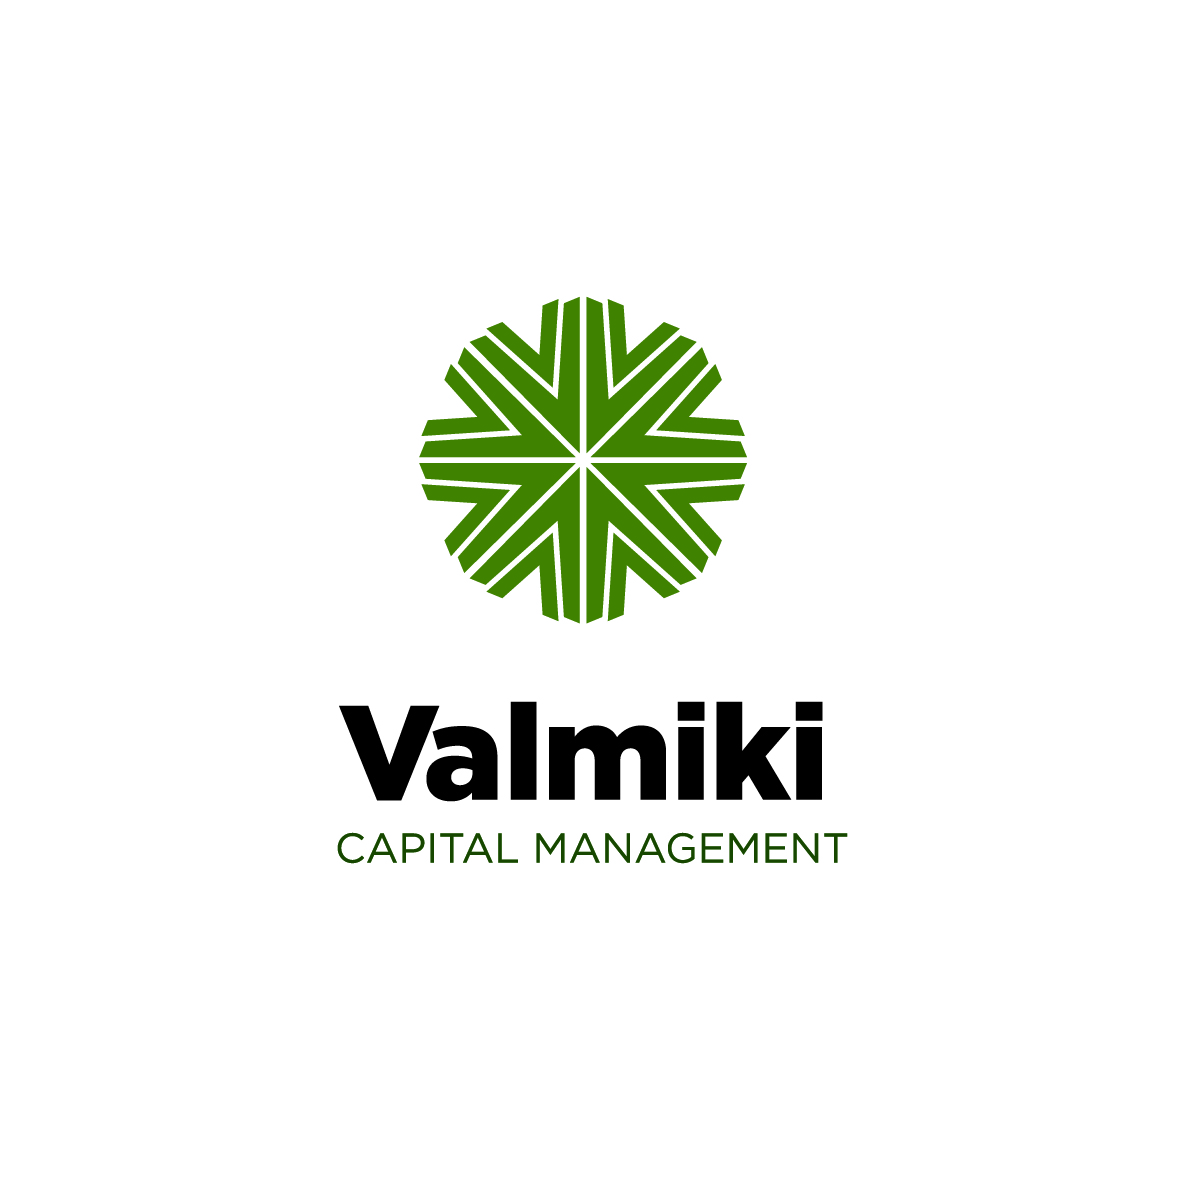 Valmiki Capital Management